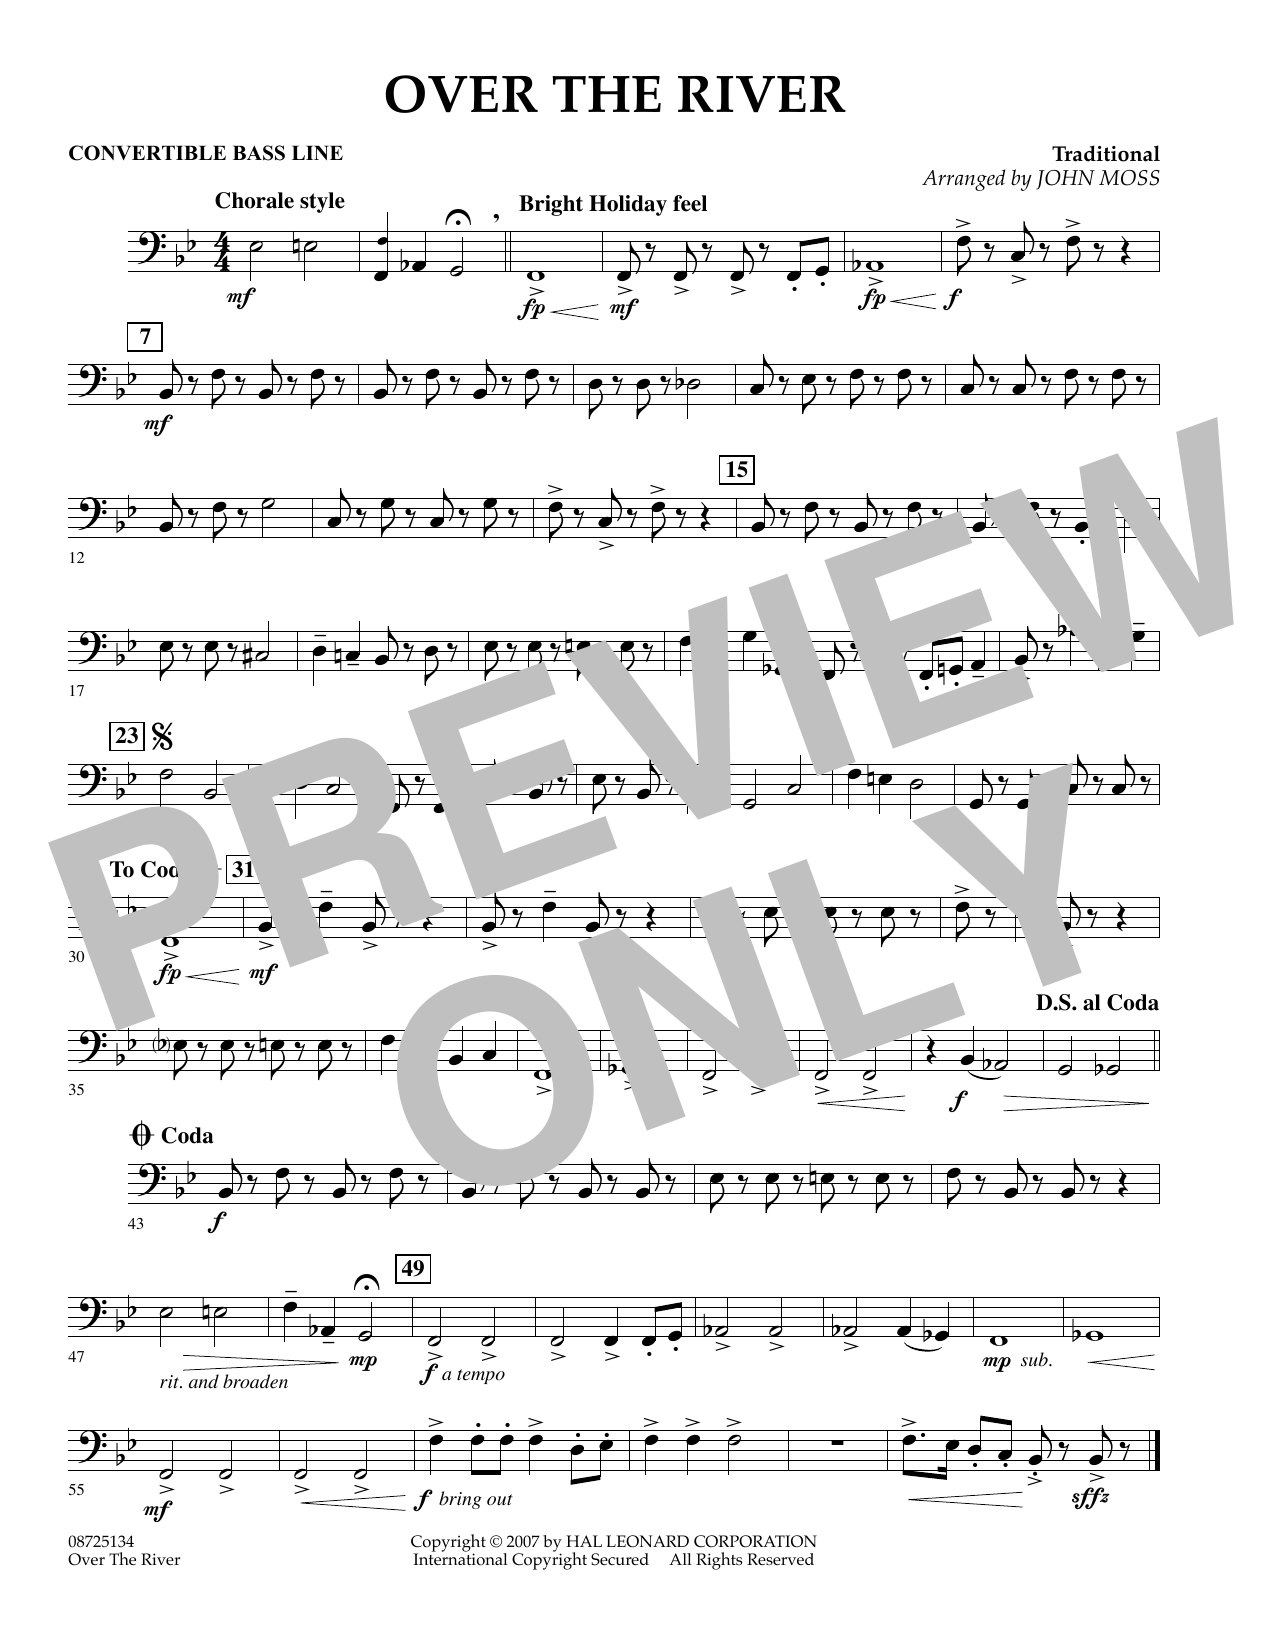 John Moss Over the River - Convertible Bass Line sheet music preview music notes and score for Concert Band including 1 page(s)